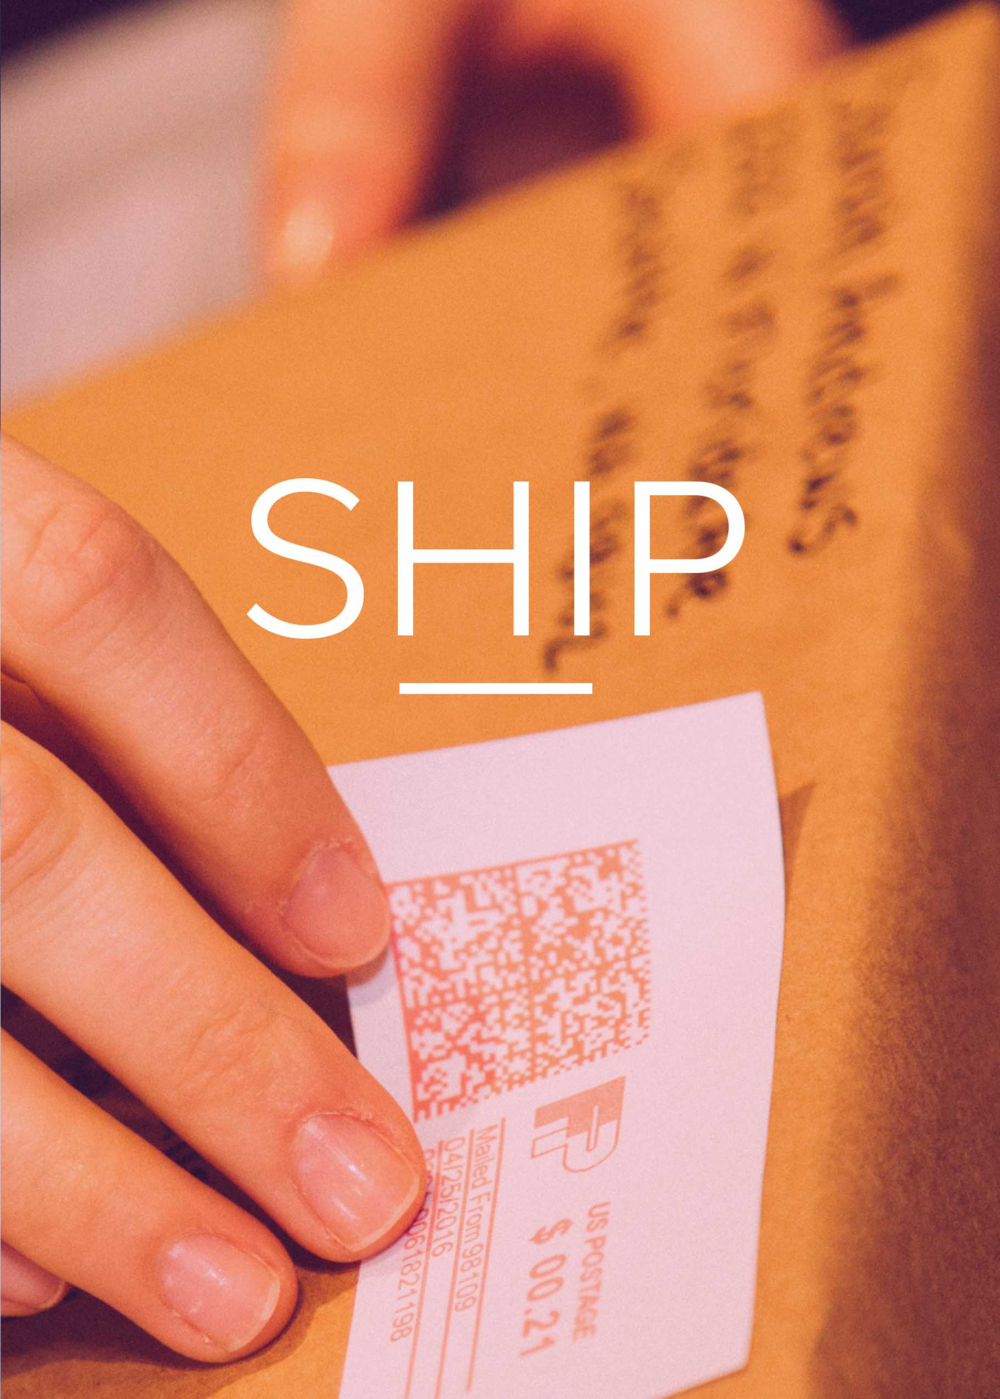 Our variety of carriers allow you to send your items so it arrives at its destination the way you want it.